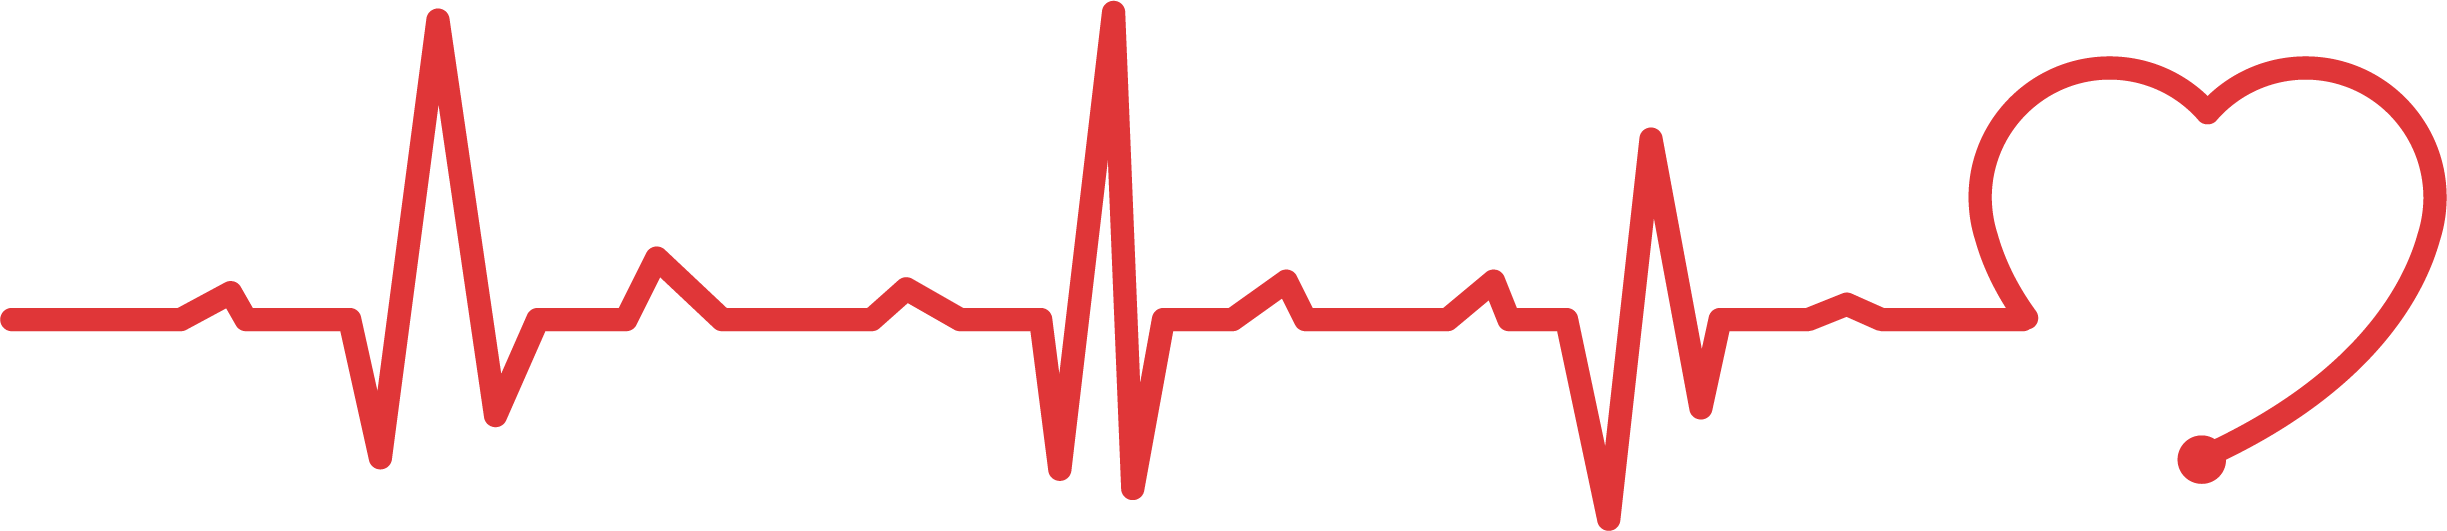 Heartbeat line png. Heart rate electrocardiography pulse